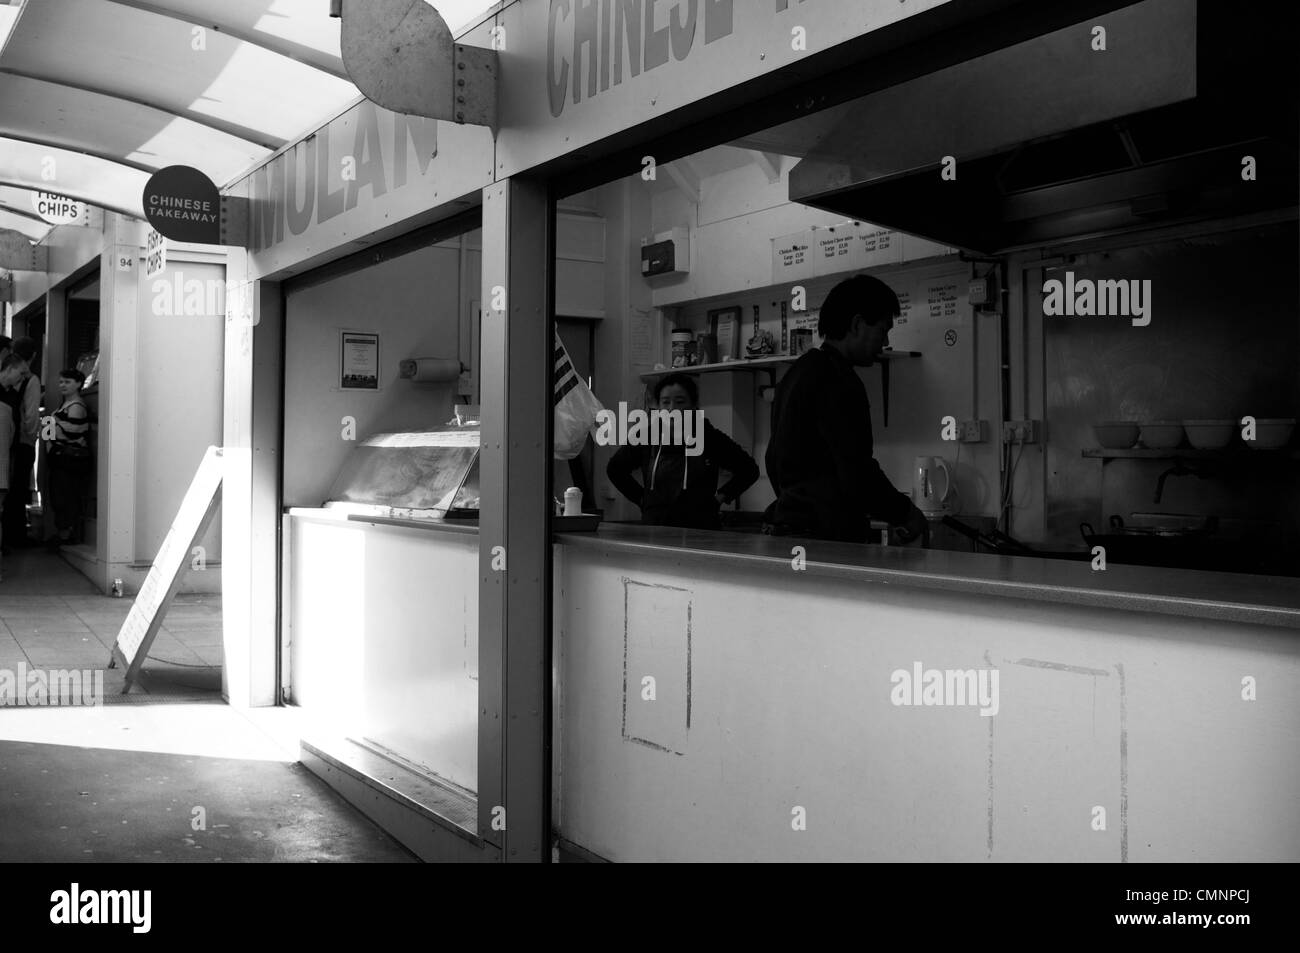 Chinese fast food stall on Norwich City Covered Market - Stock Image